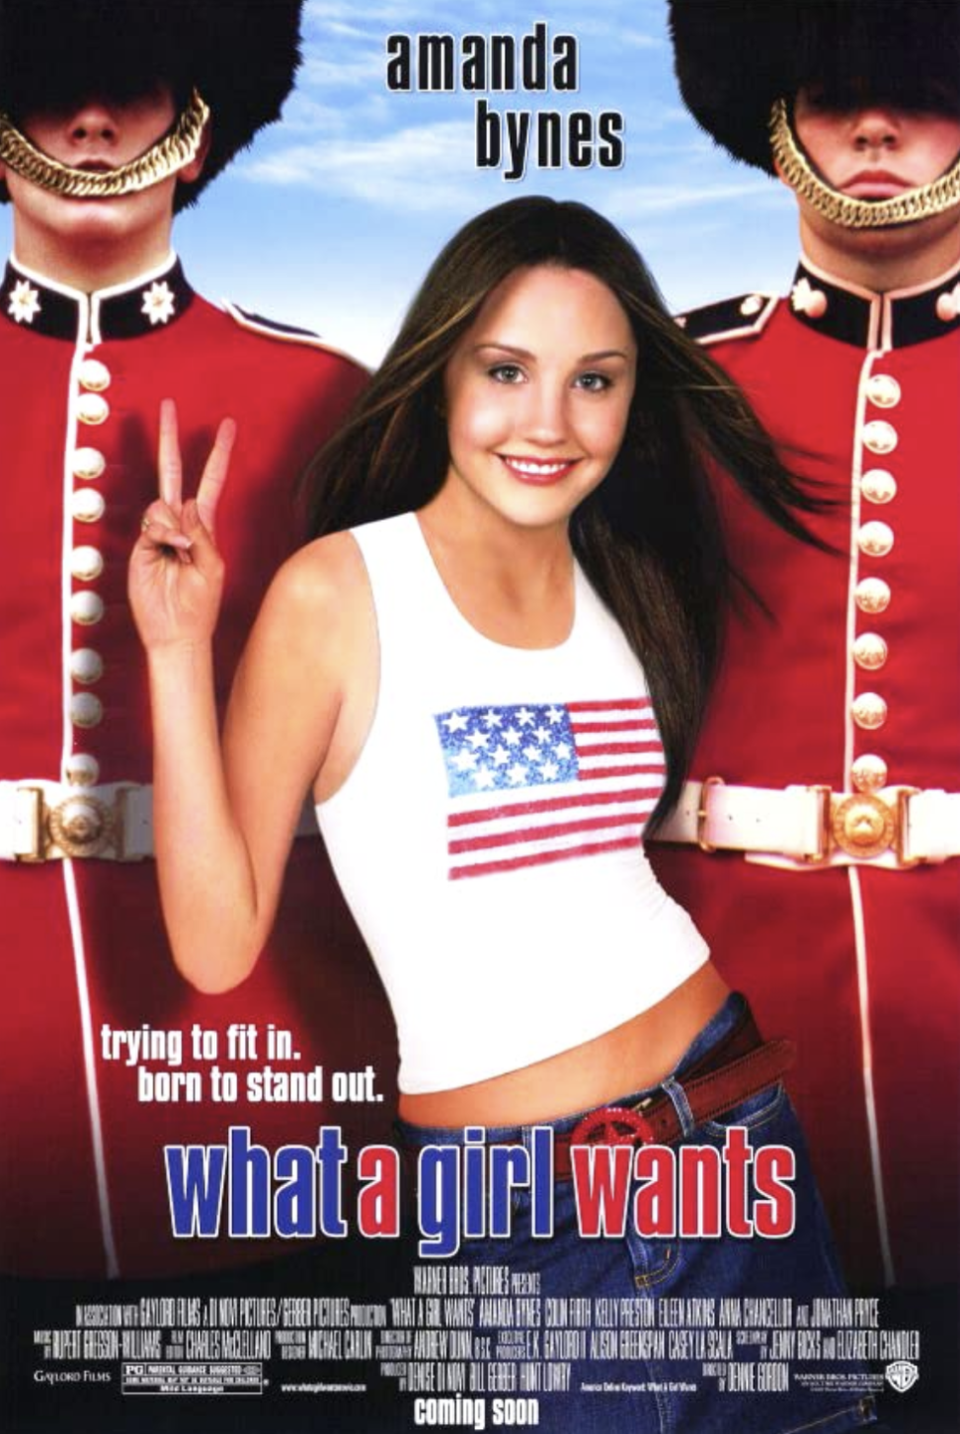 "<p>Amanda Bynes stars in this film as a typical American girl who decides to reconnect with her father — only to find out that he's running for Prime Minister of England. And just as she forges a relationship with her dad, she also finds love with a charming British musician. </p><p><a class=""link rapid-noclick-resp"" href=""https://www.netflix.com/search?q=What+a+Girl+Wants&jbv=60026155"" rel=""nofollow noopener"" target=""_blank"" data-ylk=""slk:STREAM NOW"">STREAM NOW</a></p>"